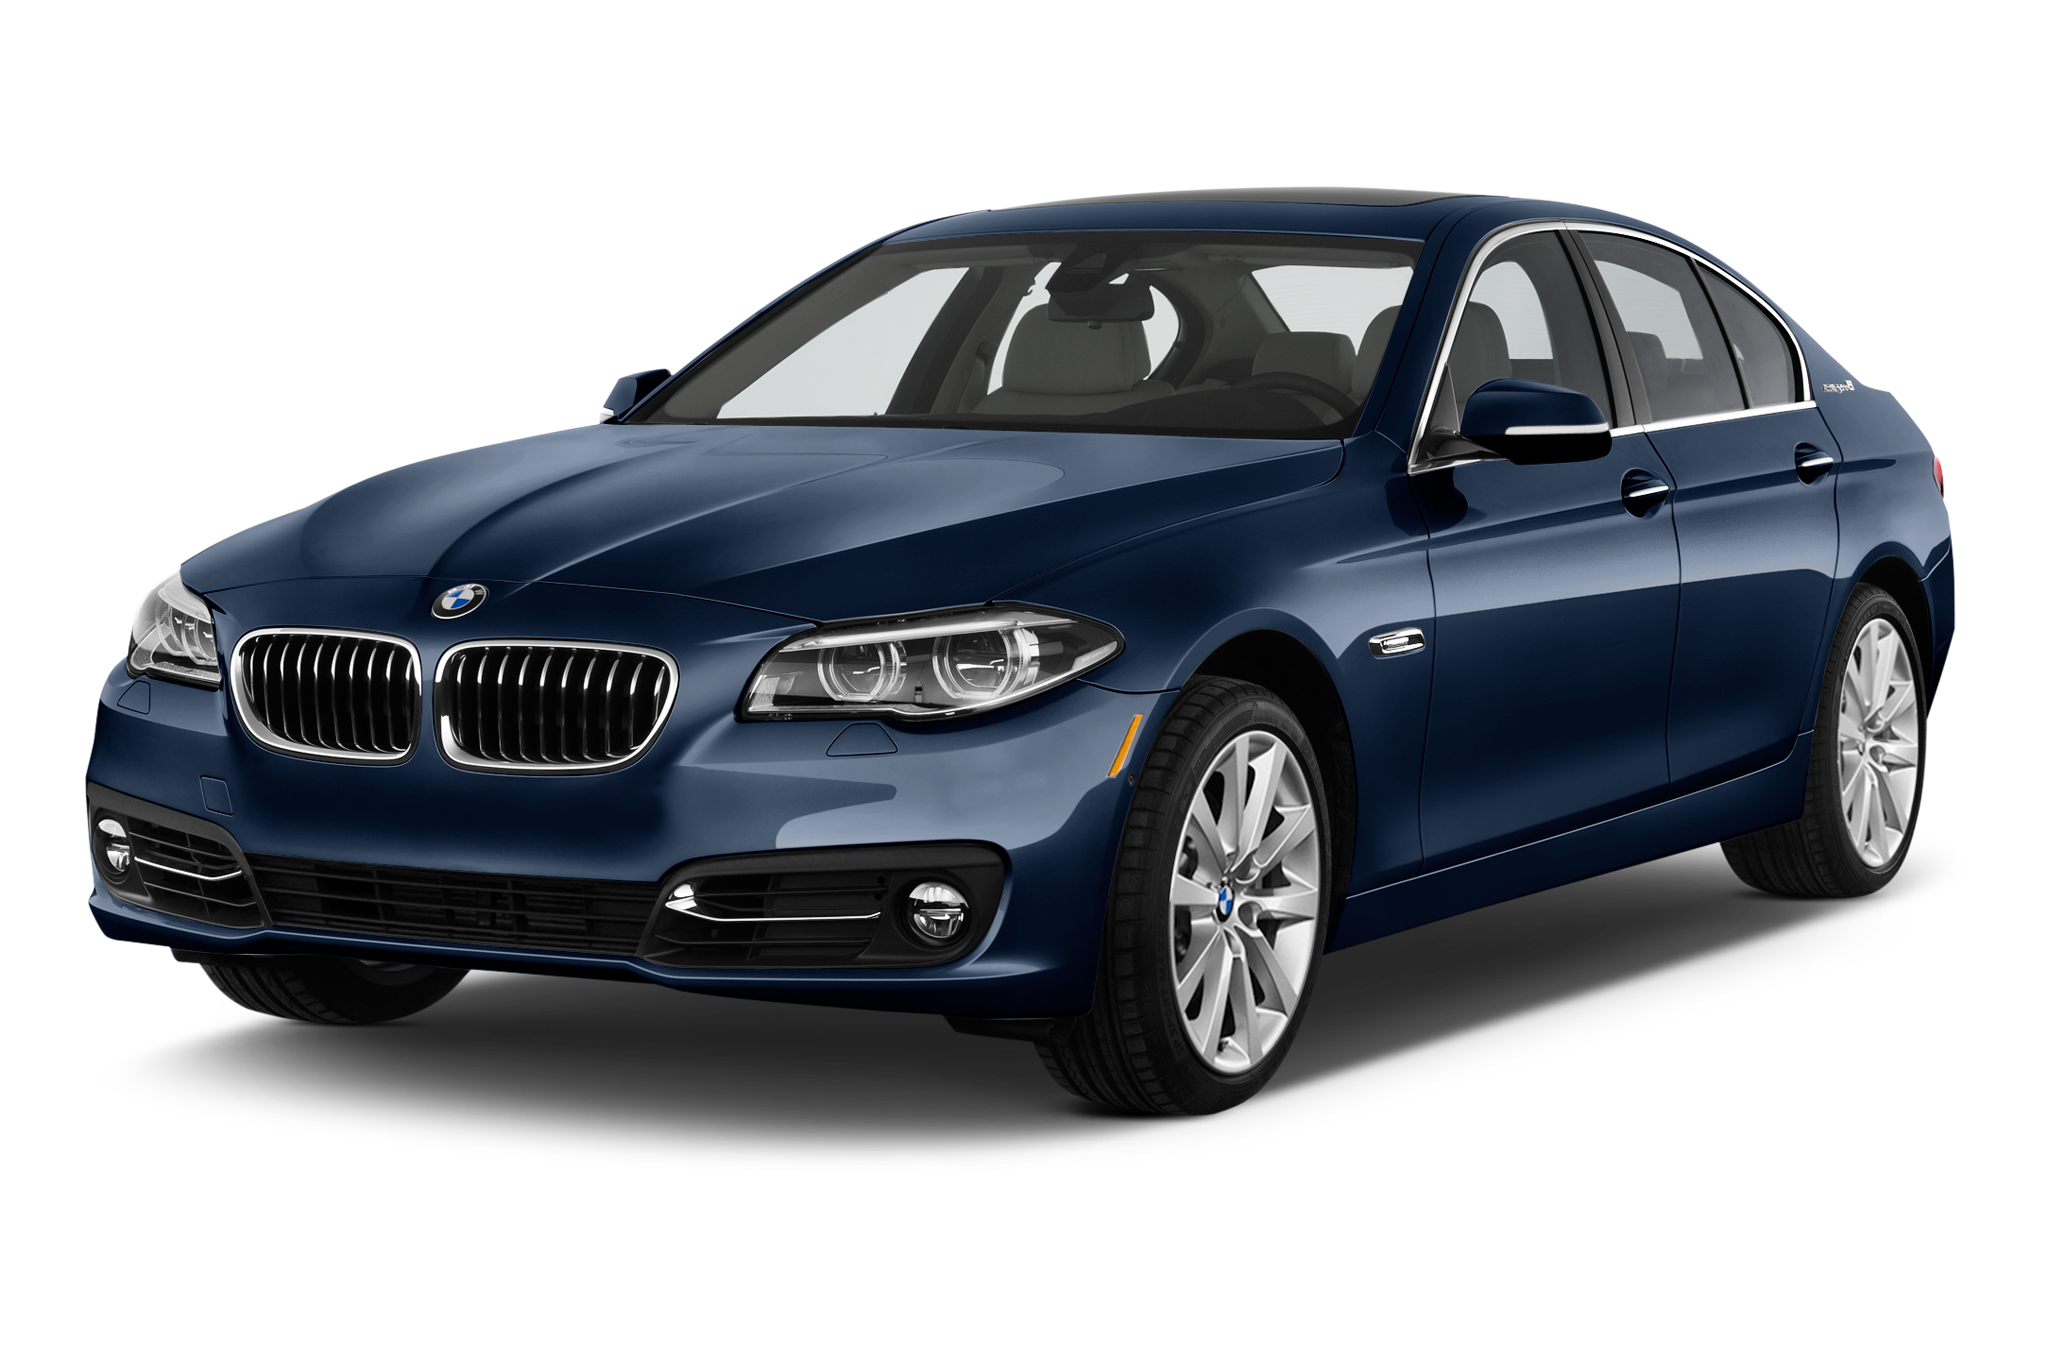 Bmw front png. Series reviews and